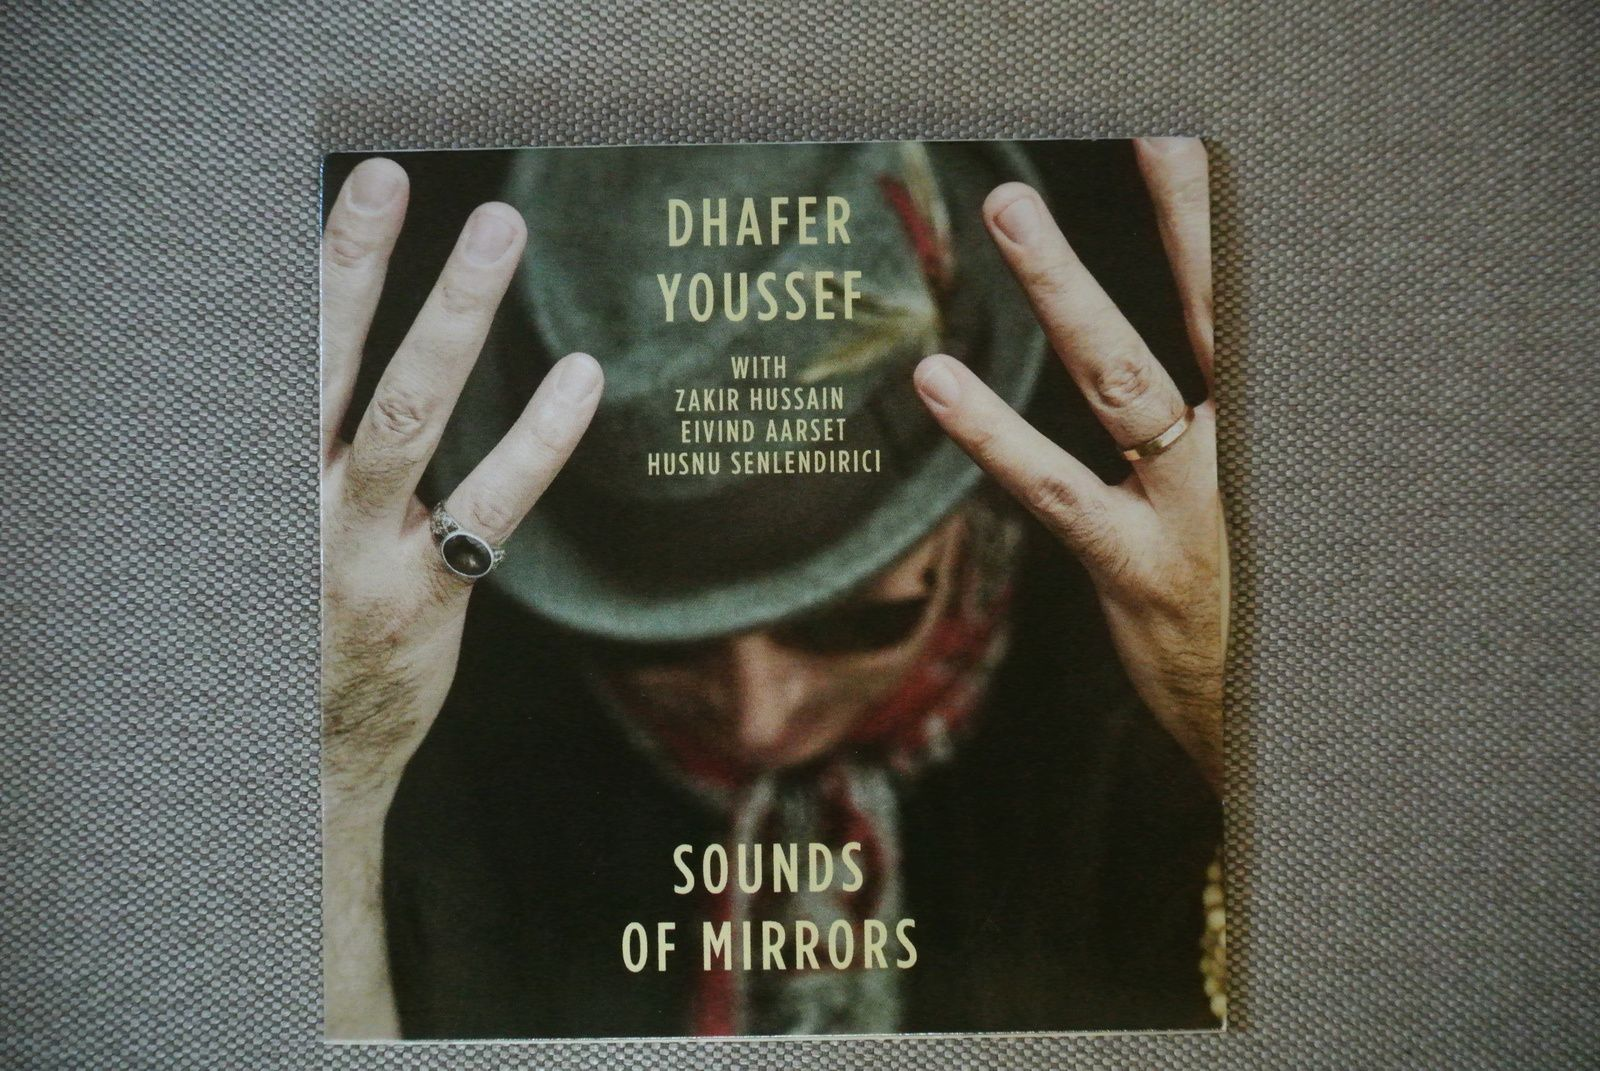 DHAFER YOUSSEF: SOUNDS OF MIRRORS (ANTEPRIMA PRODUCTIONS)